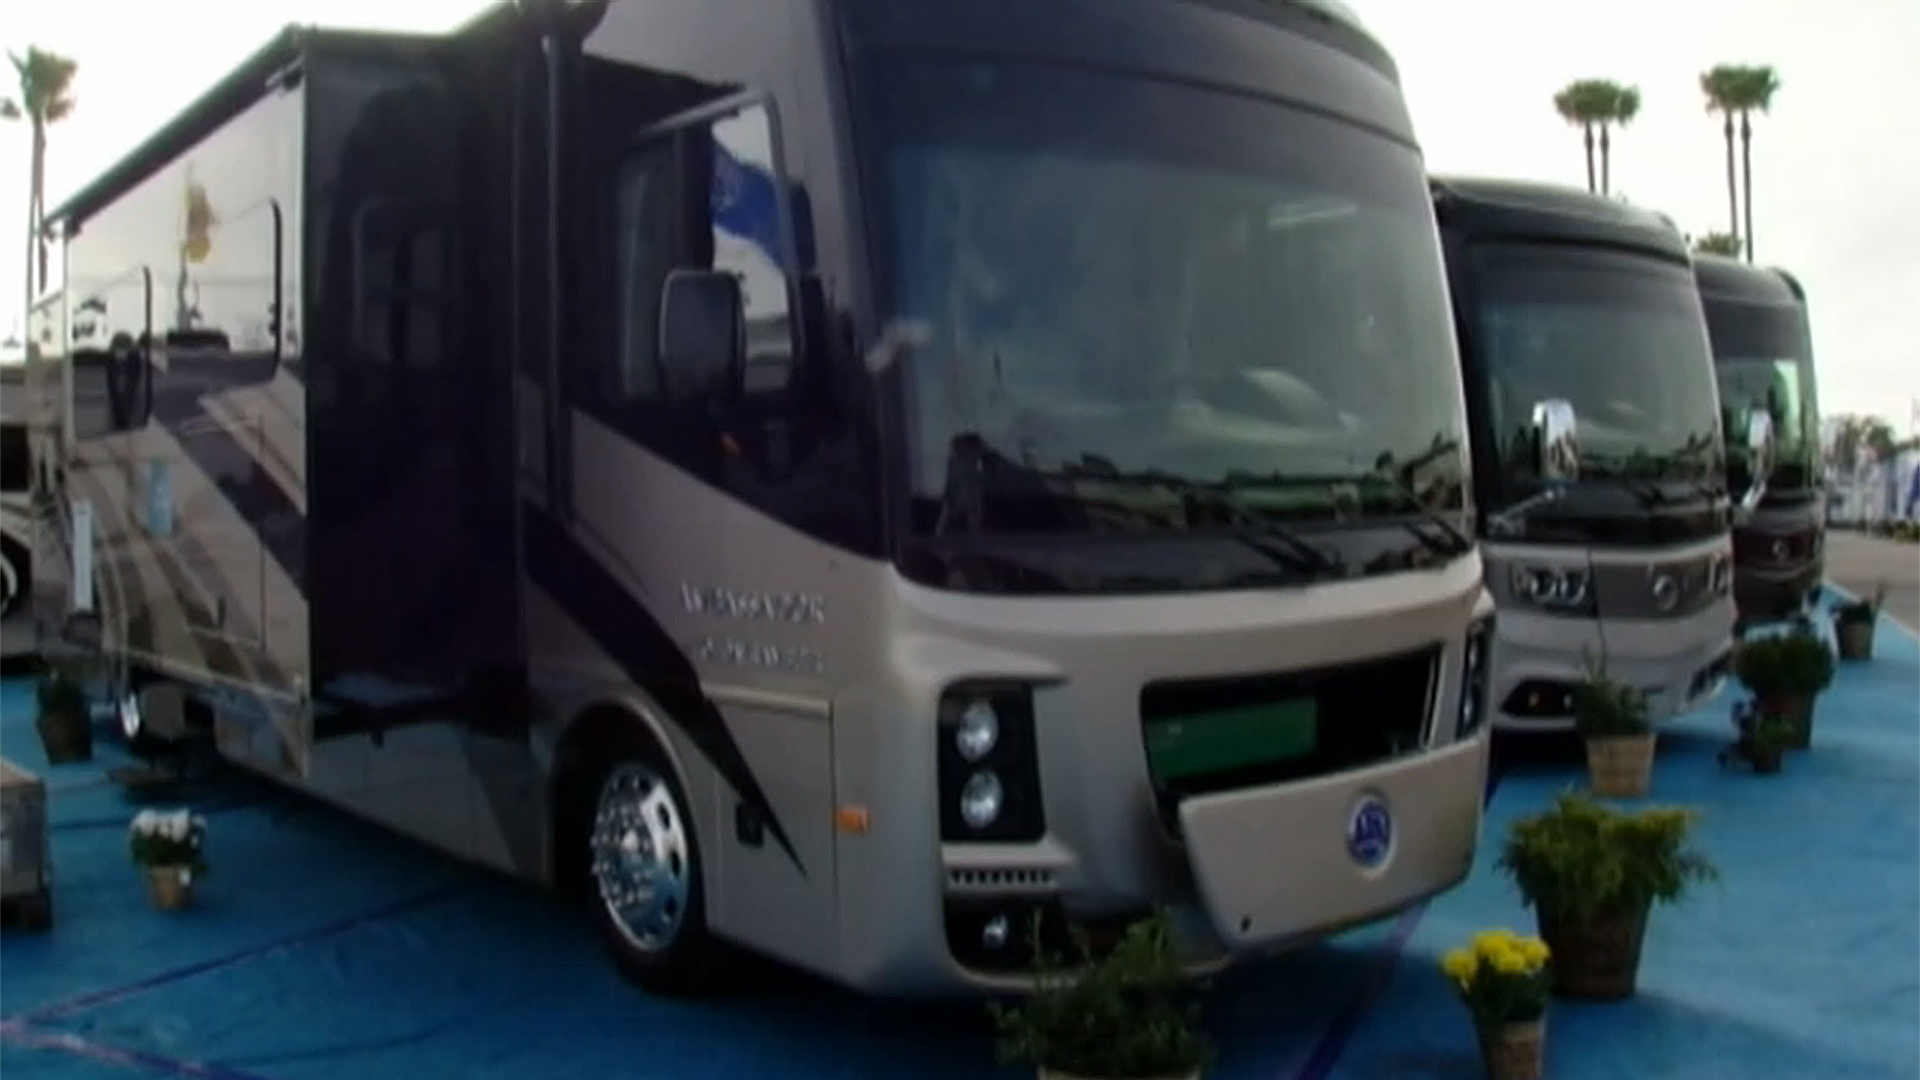 RV Sales Booming